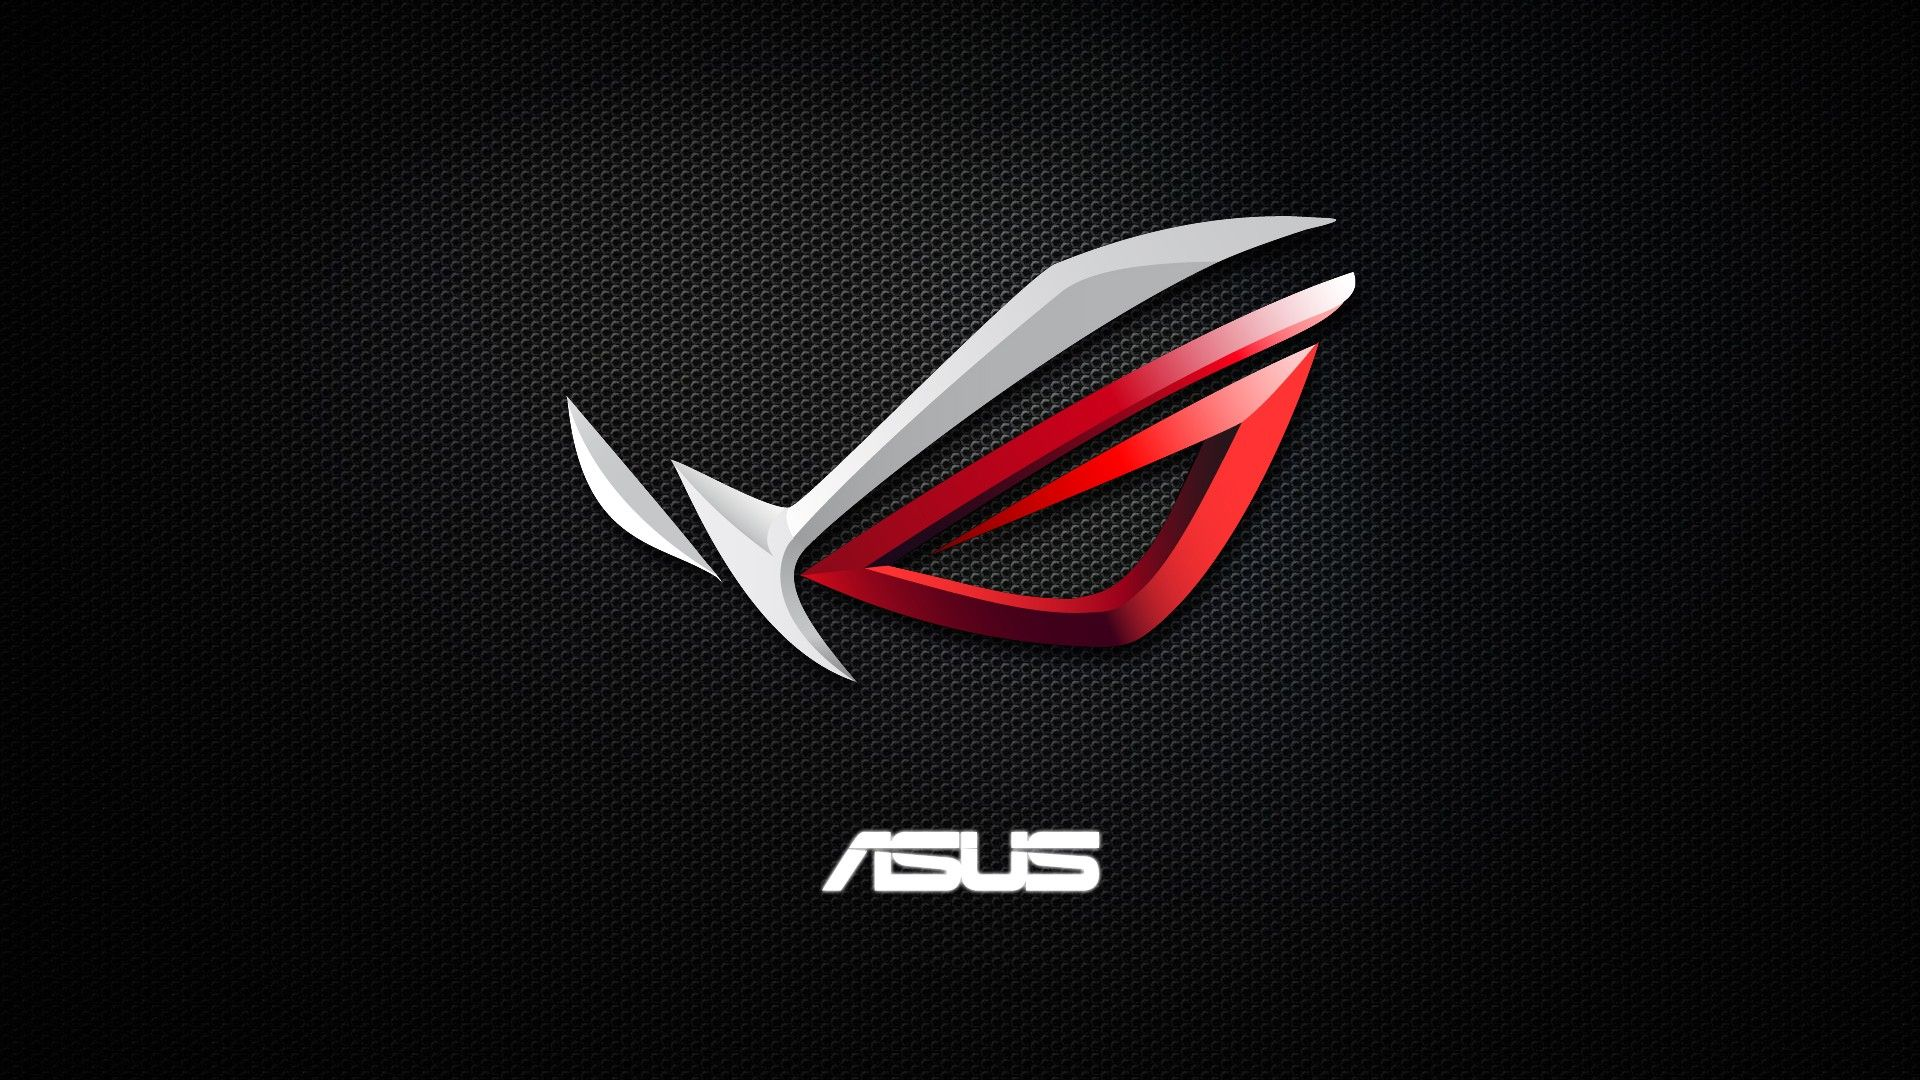 Asus hd wallpapers pictures images - Asus x series wallpaper hd ...